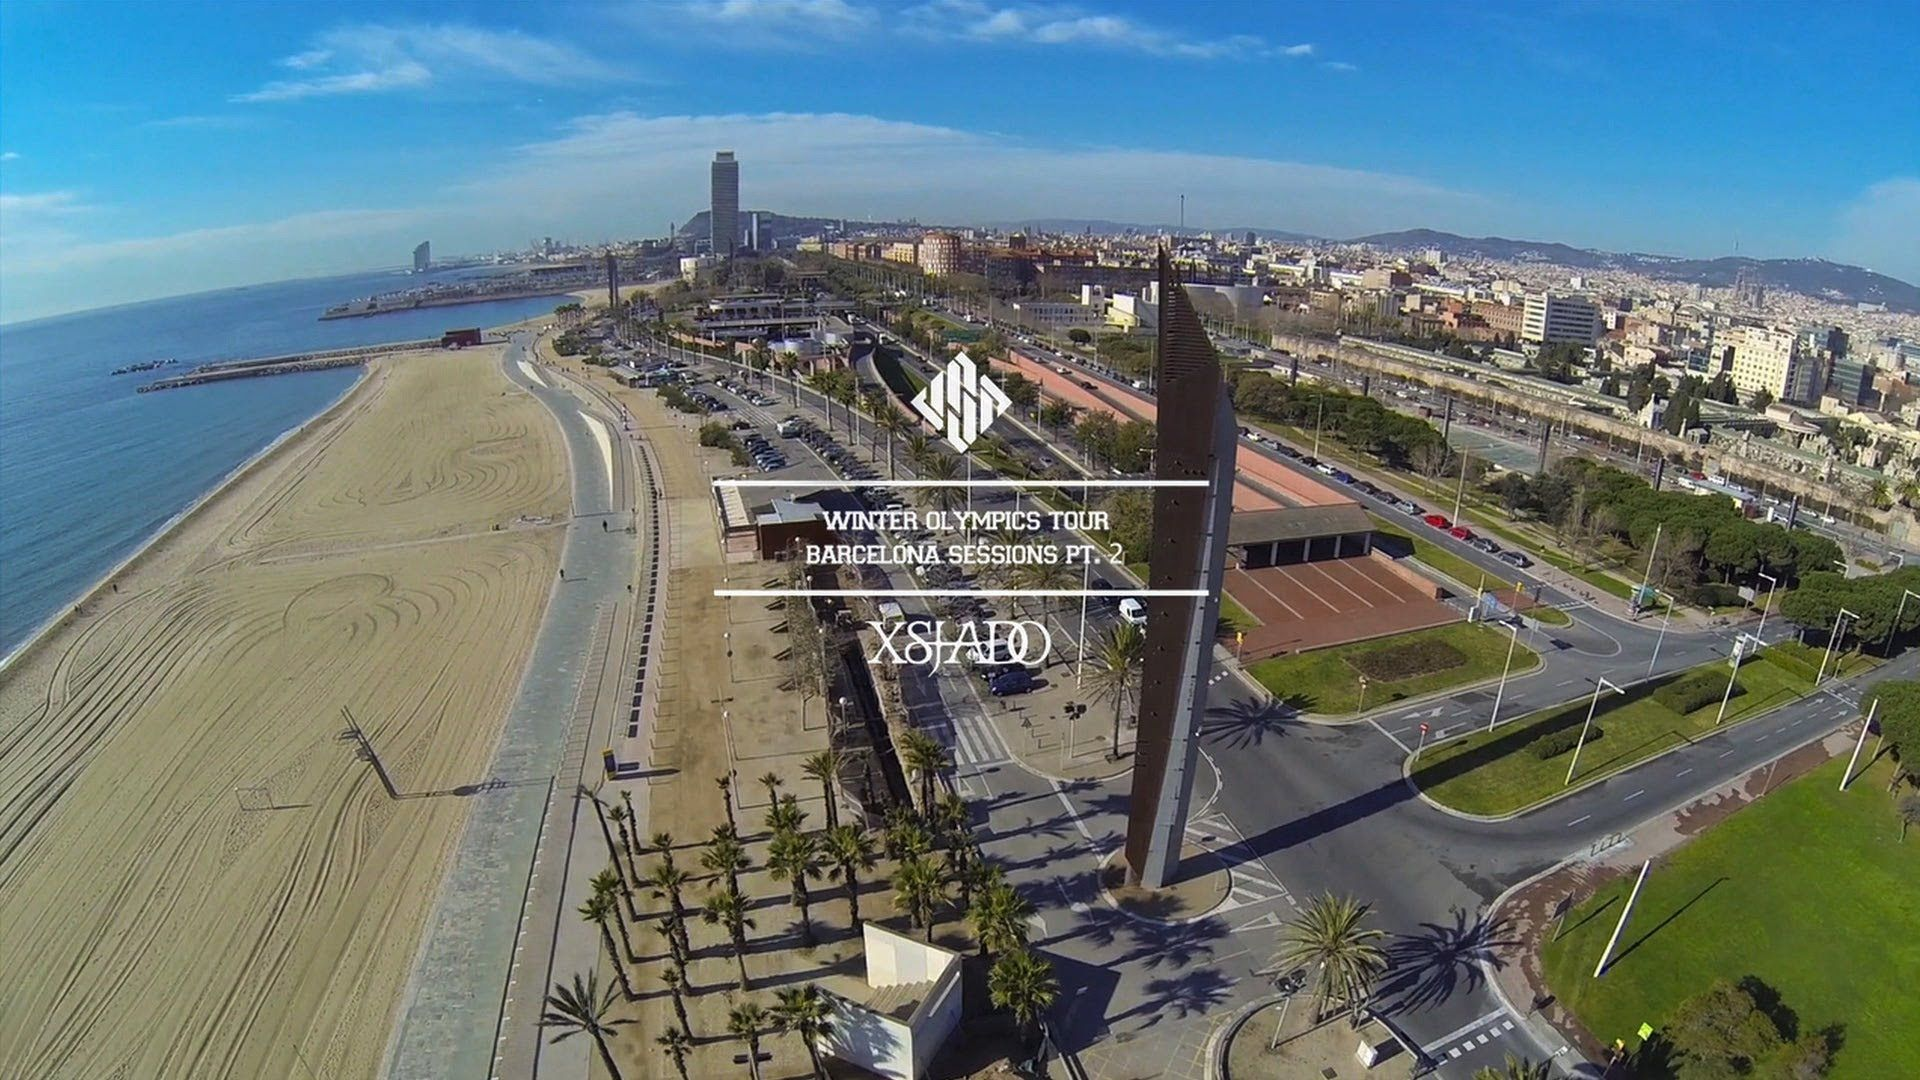 Winter Olympics Tour - Barcelona Sessions Pt.2